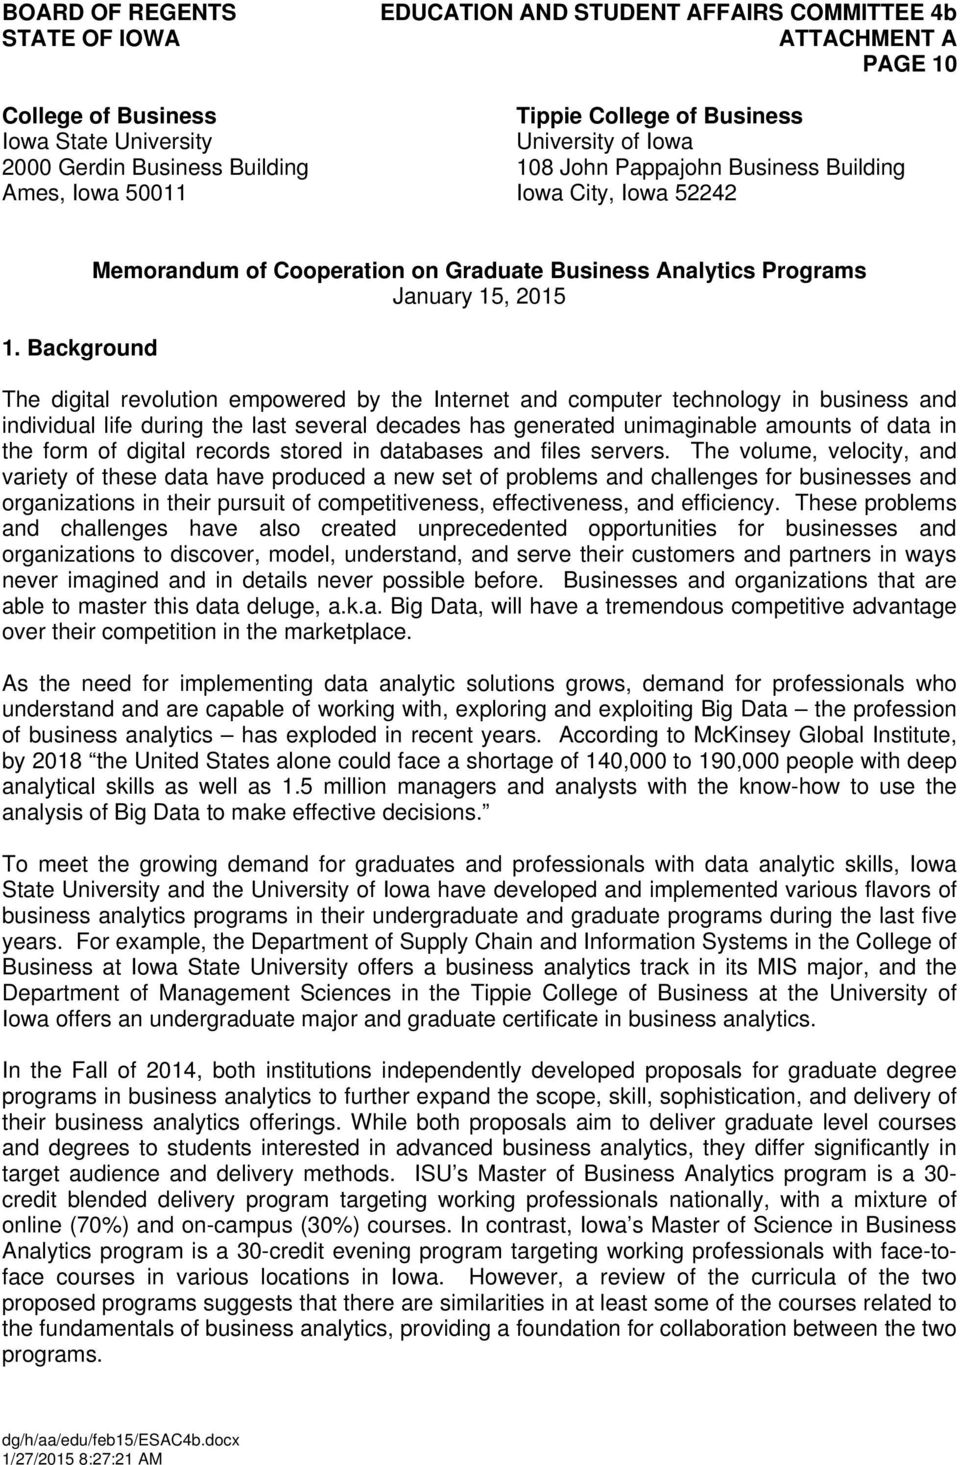 Background Memorandum of Cooperation on Graduate Business Analytics Programs January 15, 2015 The digital revolution empowered by the Internet and computer technology in business and individual life